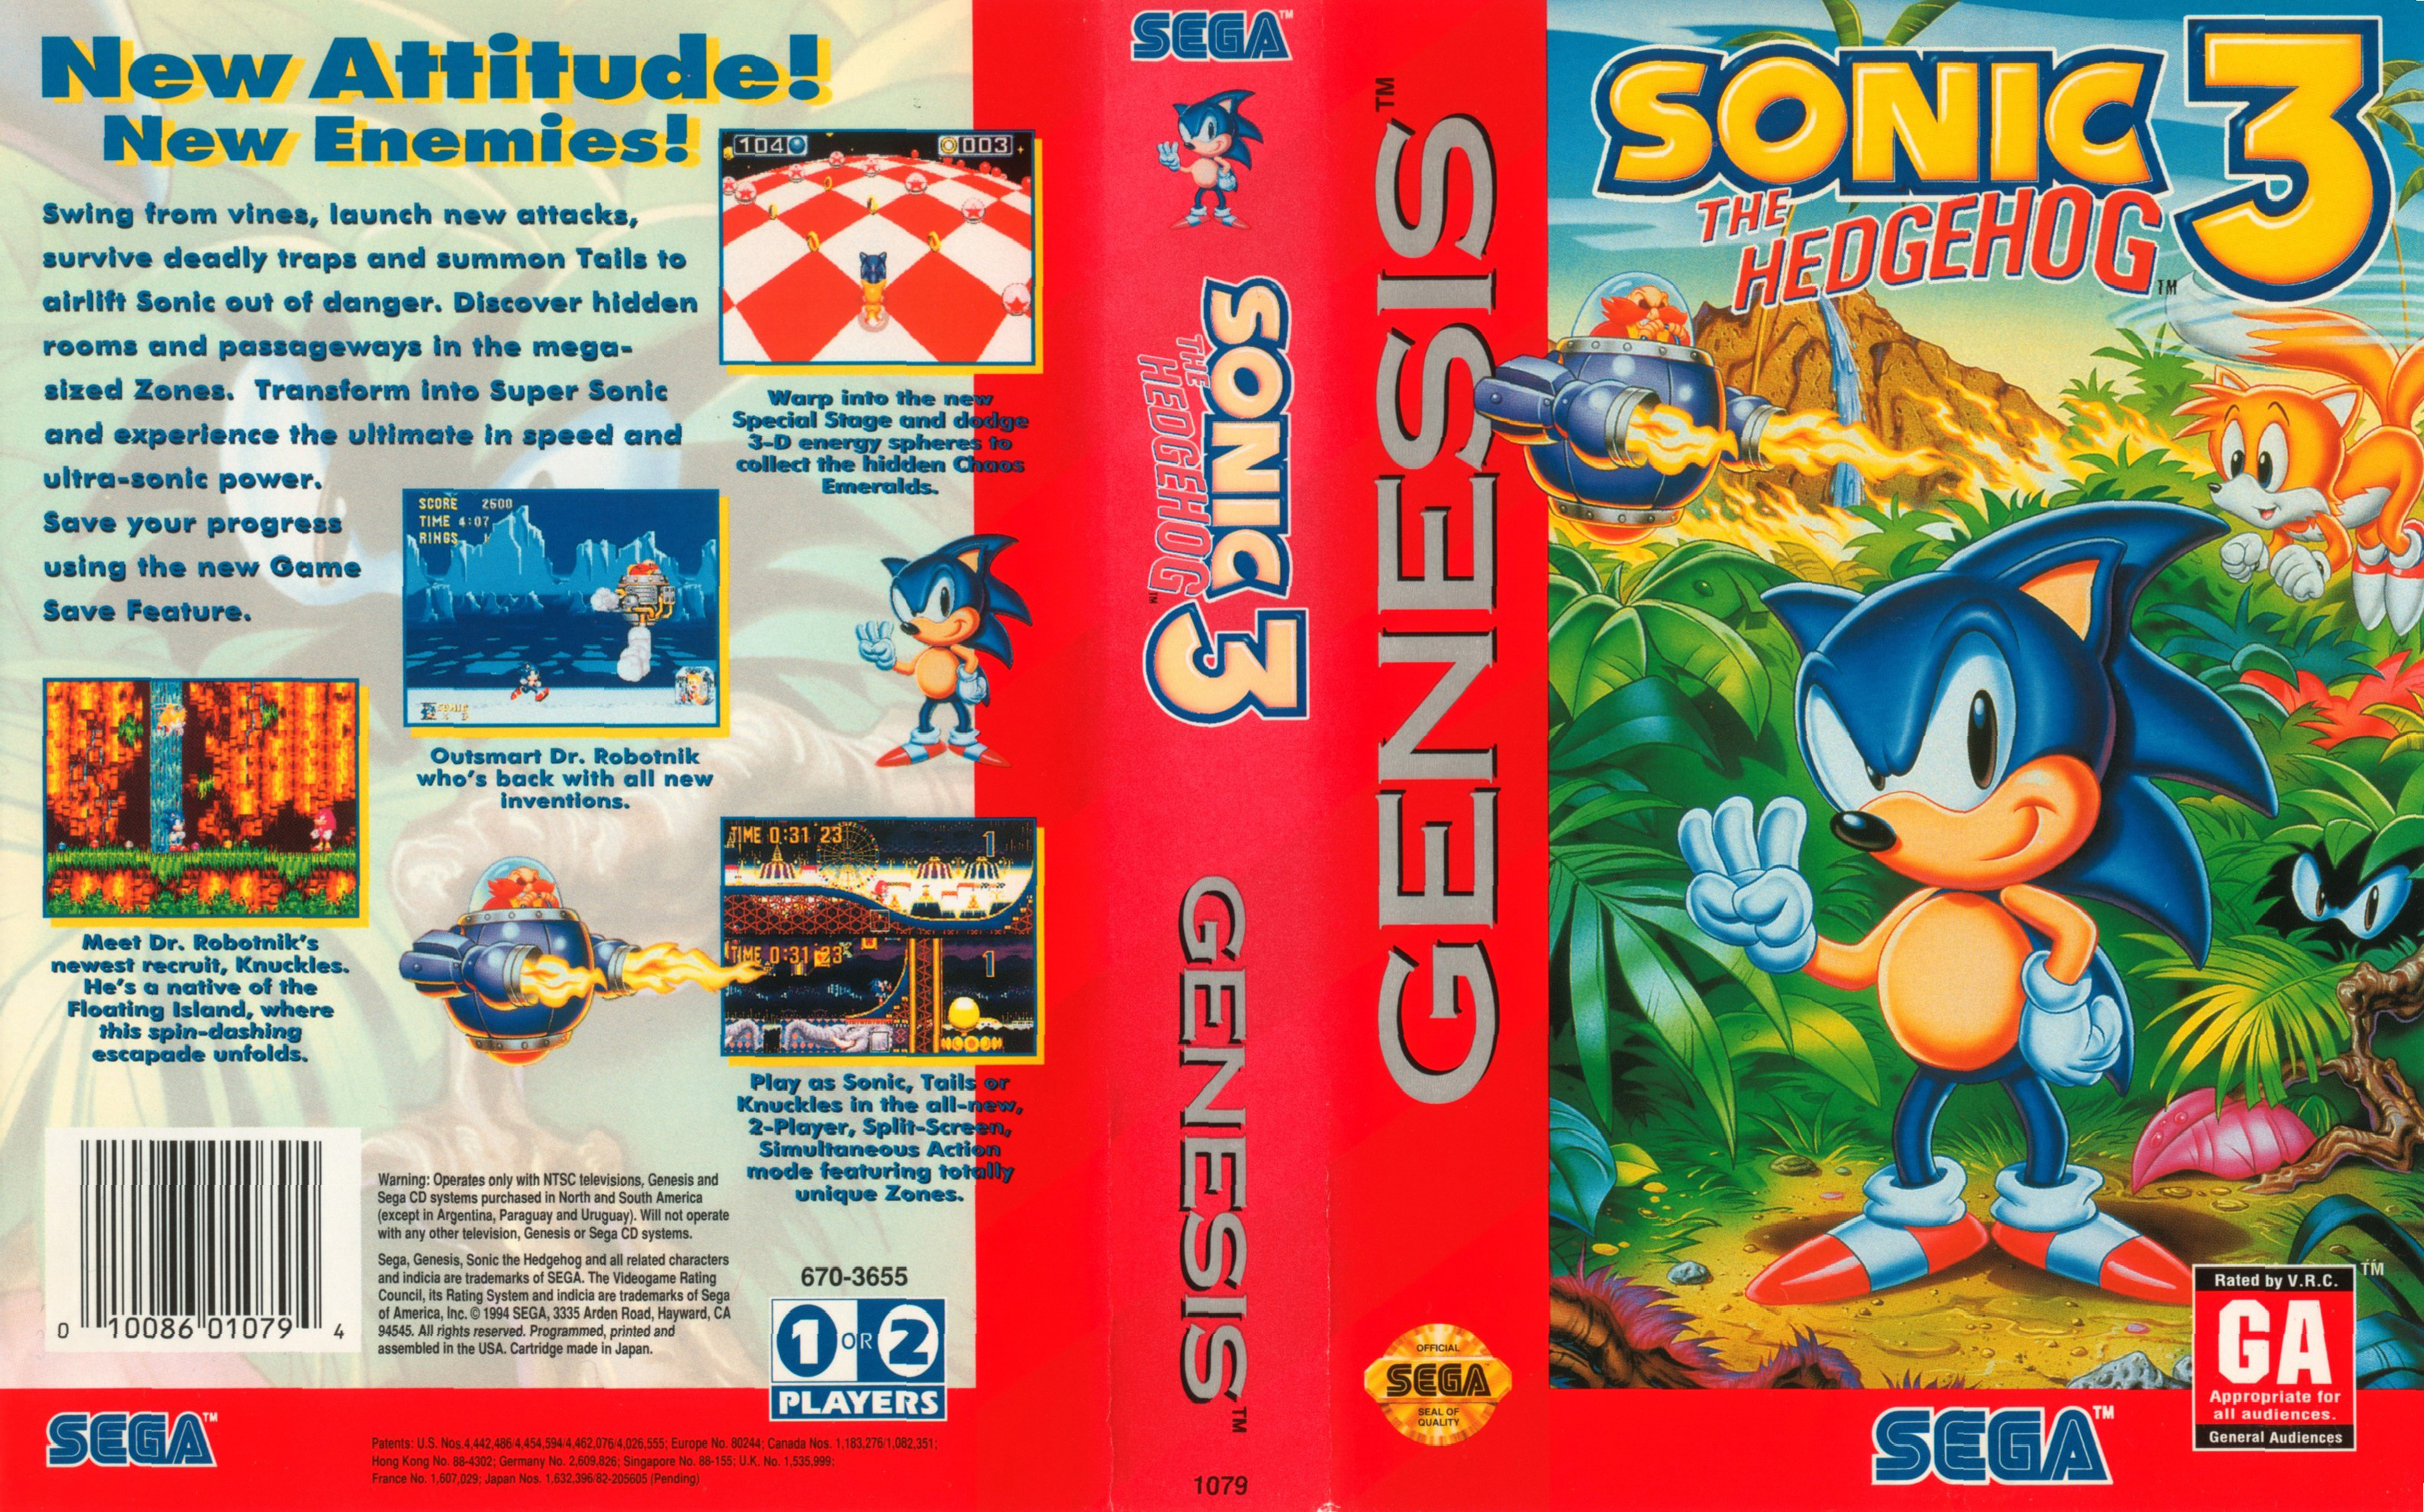 Sonic The Hedgehog 3 Genesis Covers Cover Century Over 500 000 Album Art Covers For Free